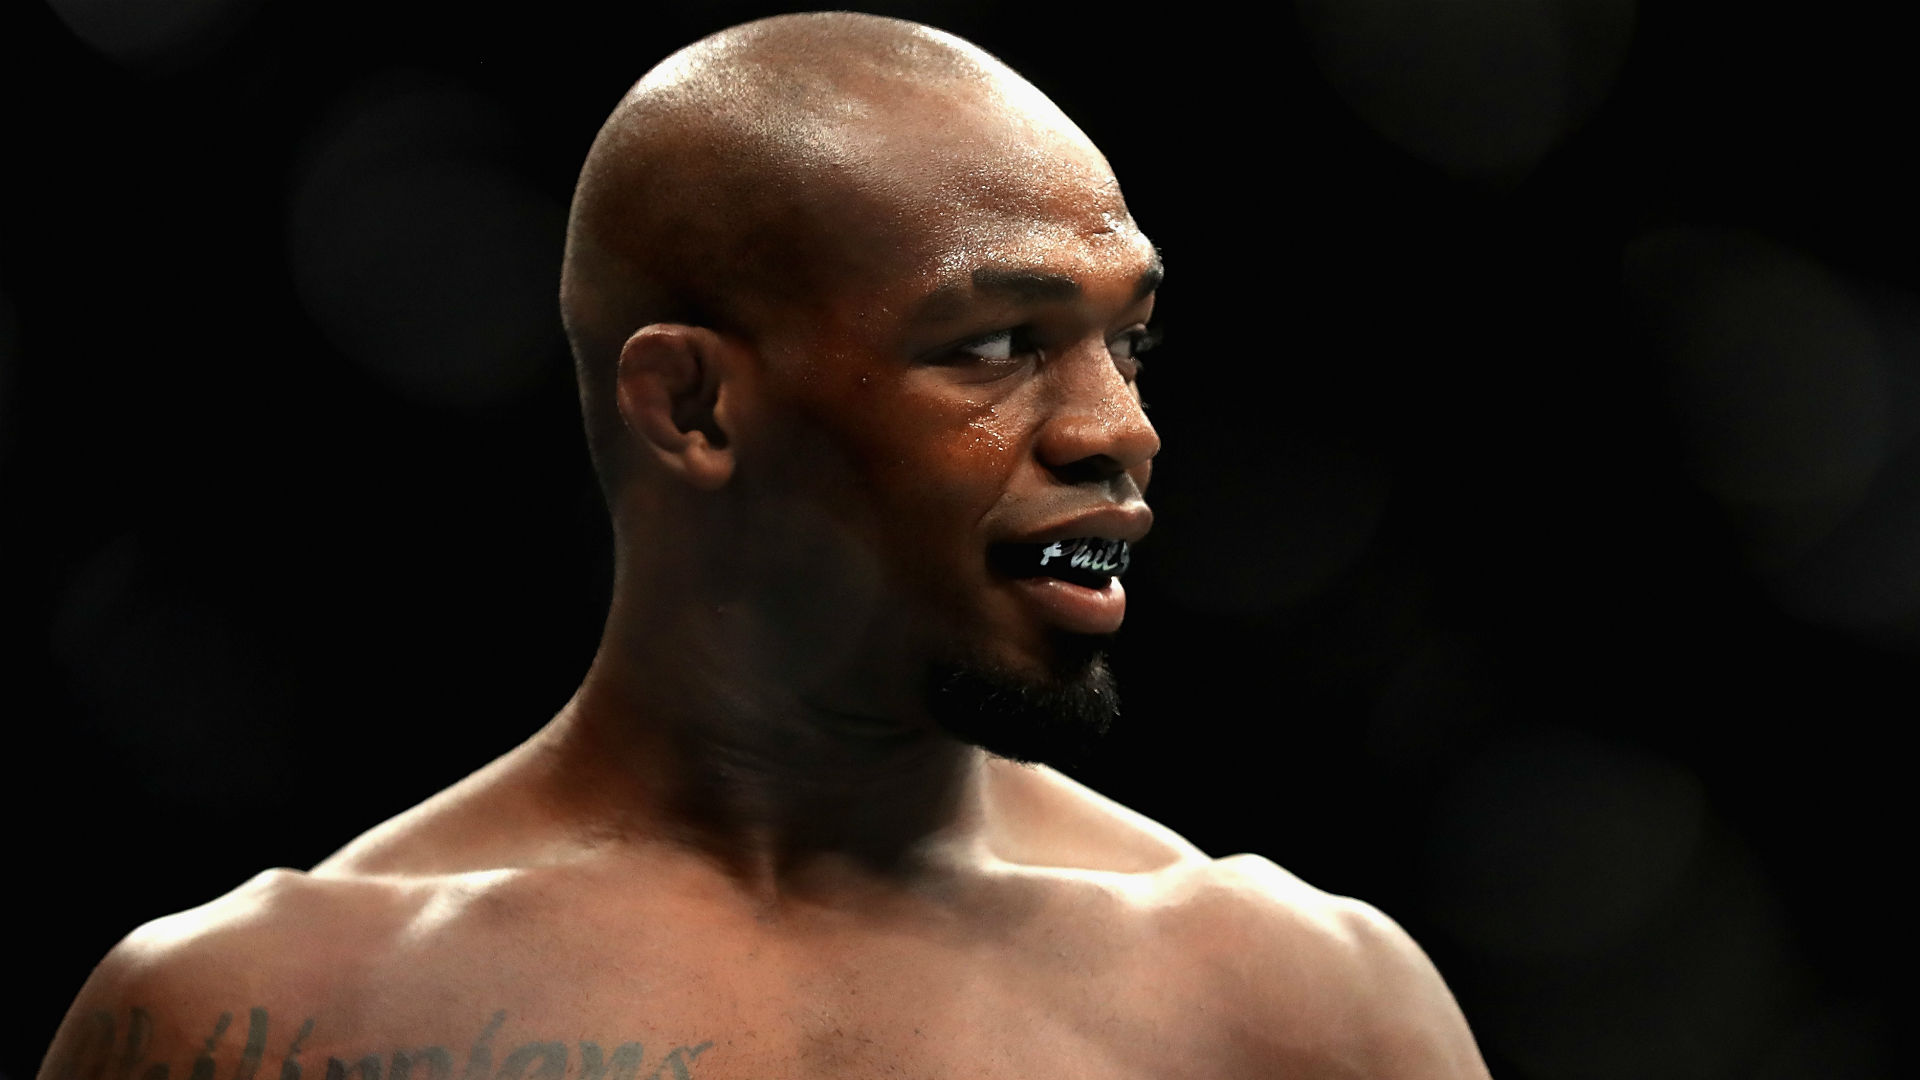 Daniel Cormier blasts Jon Jones: 'He tested positive again!'